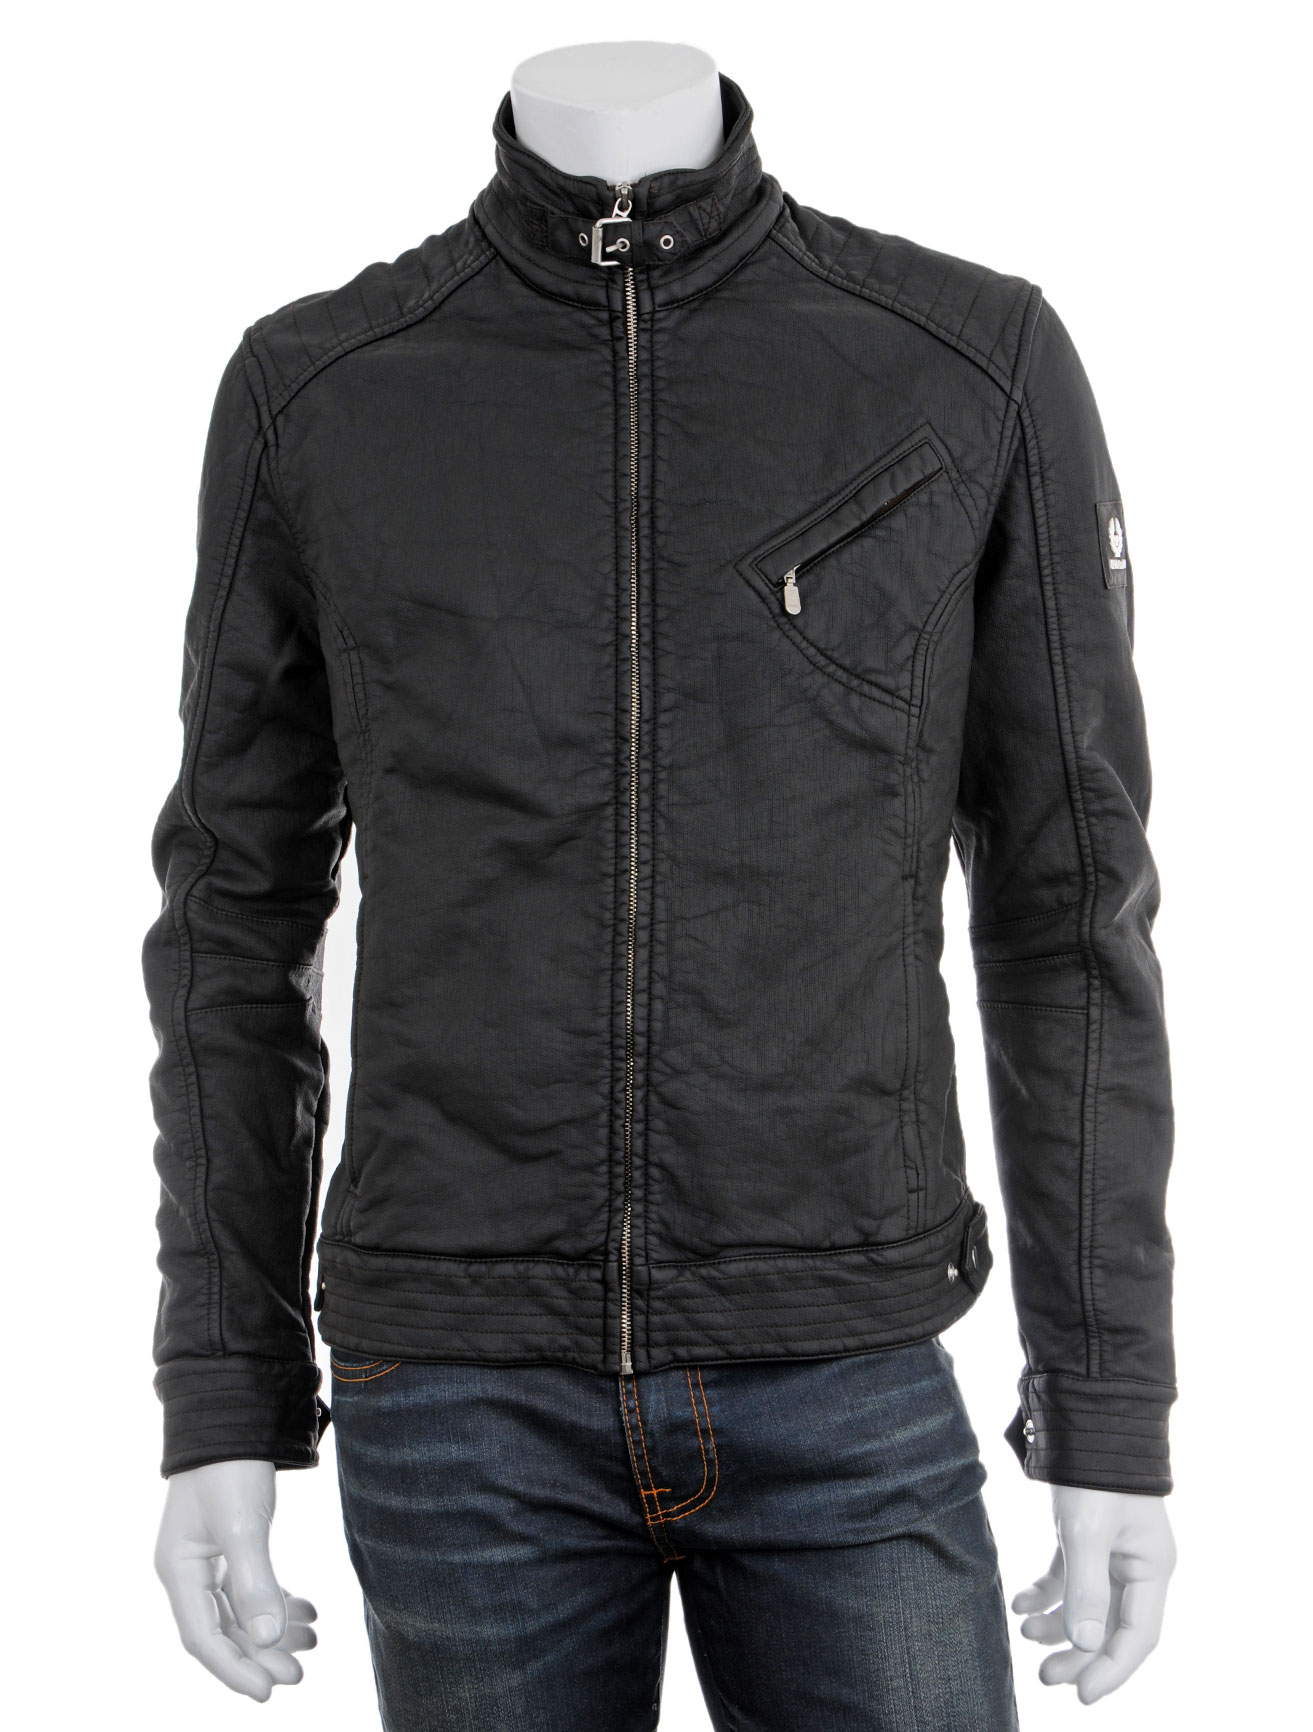 belstaff h racer cardigan man m natural 715326 herren jacke biker pictures. Black Bedroom Furniture Sets. Home Design Ideas